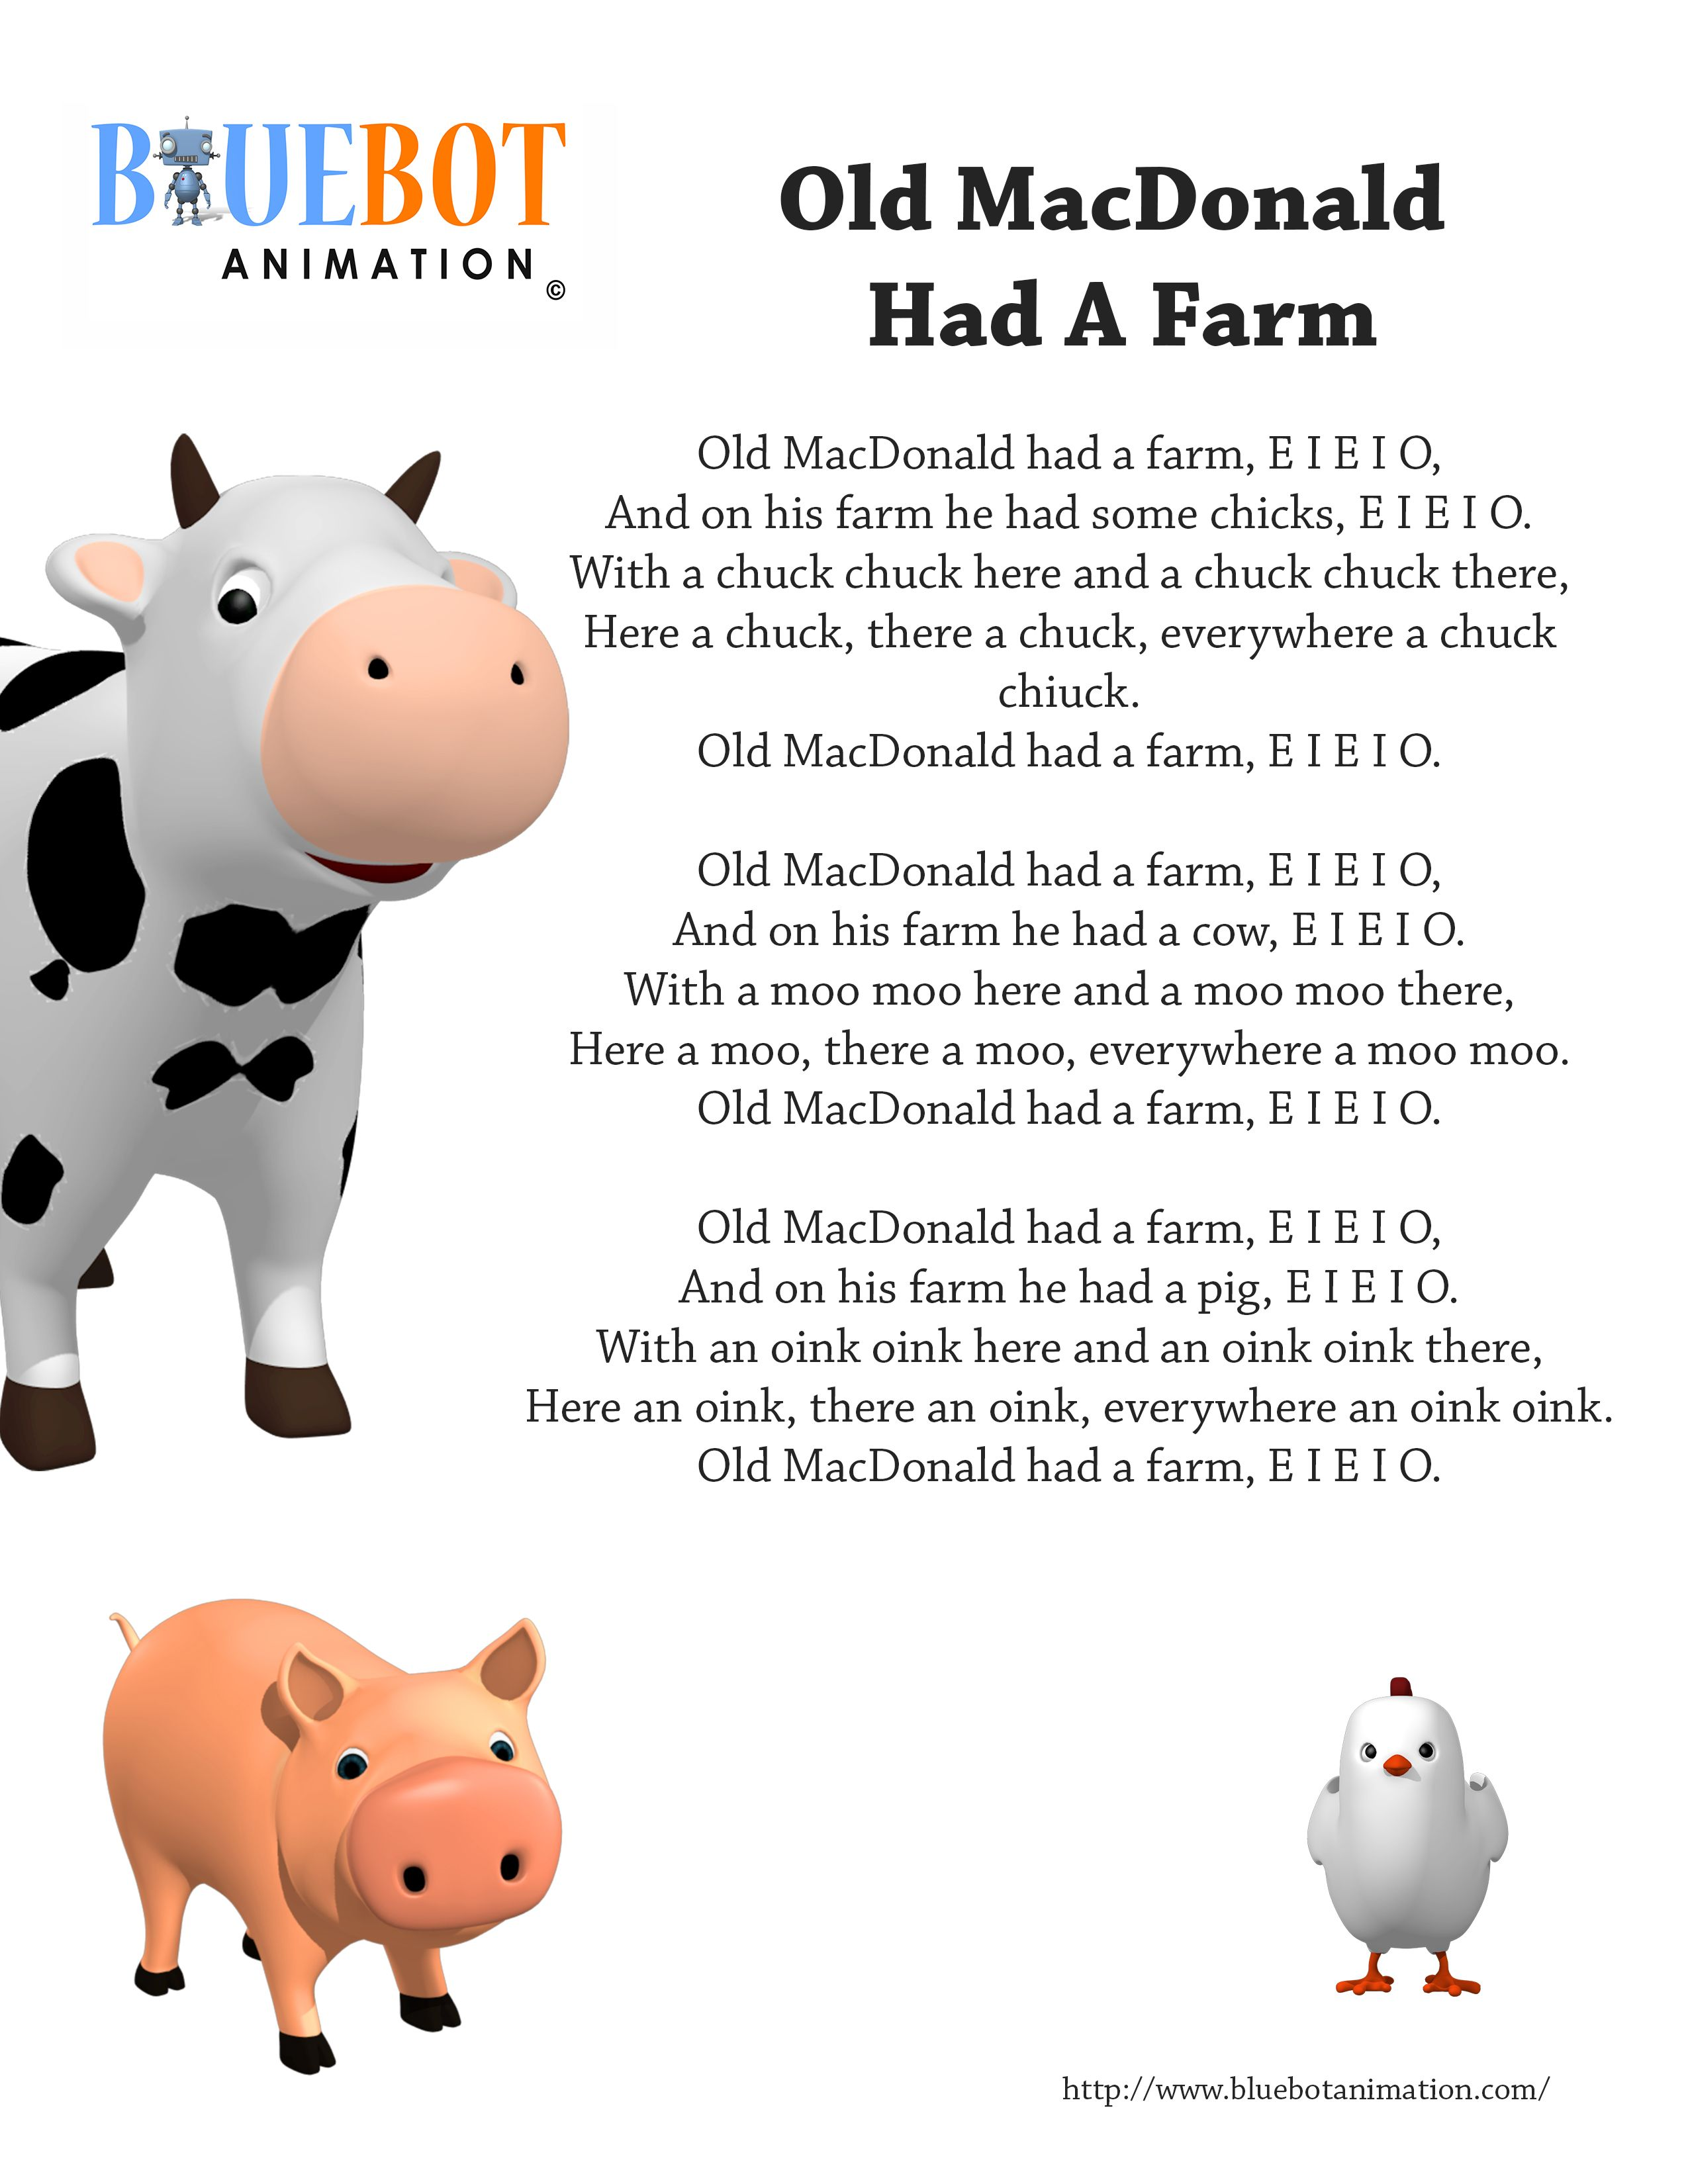 Old Macdonald Had A Farm Nursery Rhyme Lyrics Free